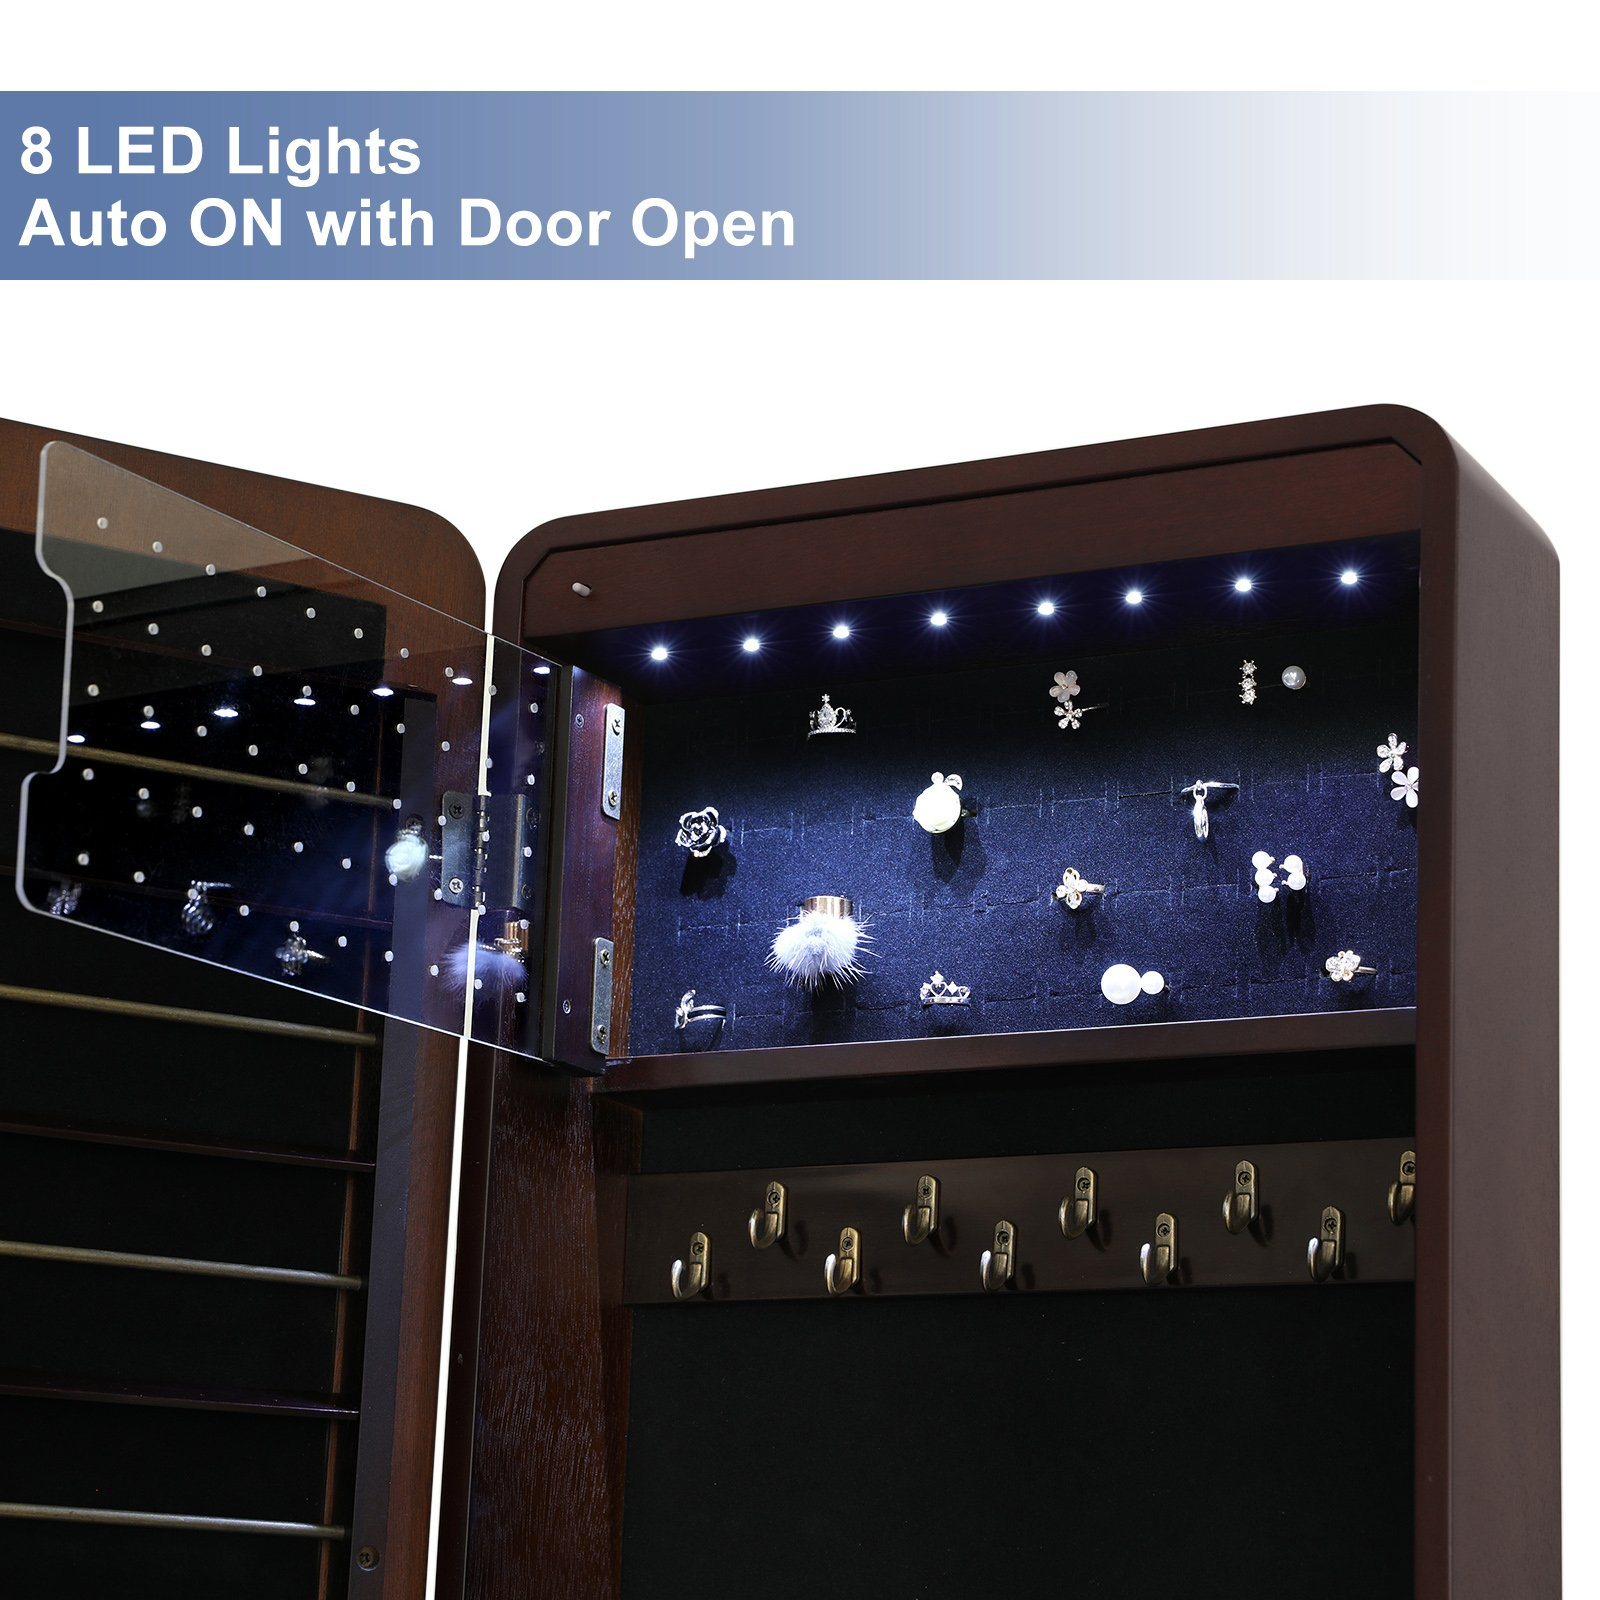 SONGMICS 8 LEDs Jewelry Cabinet Armoire with Beveled Edge Mirror, Gorgeous Jewelry Organizer Large Capacity Brown Patented UJJC89K by SONGMICS (Image #4)